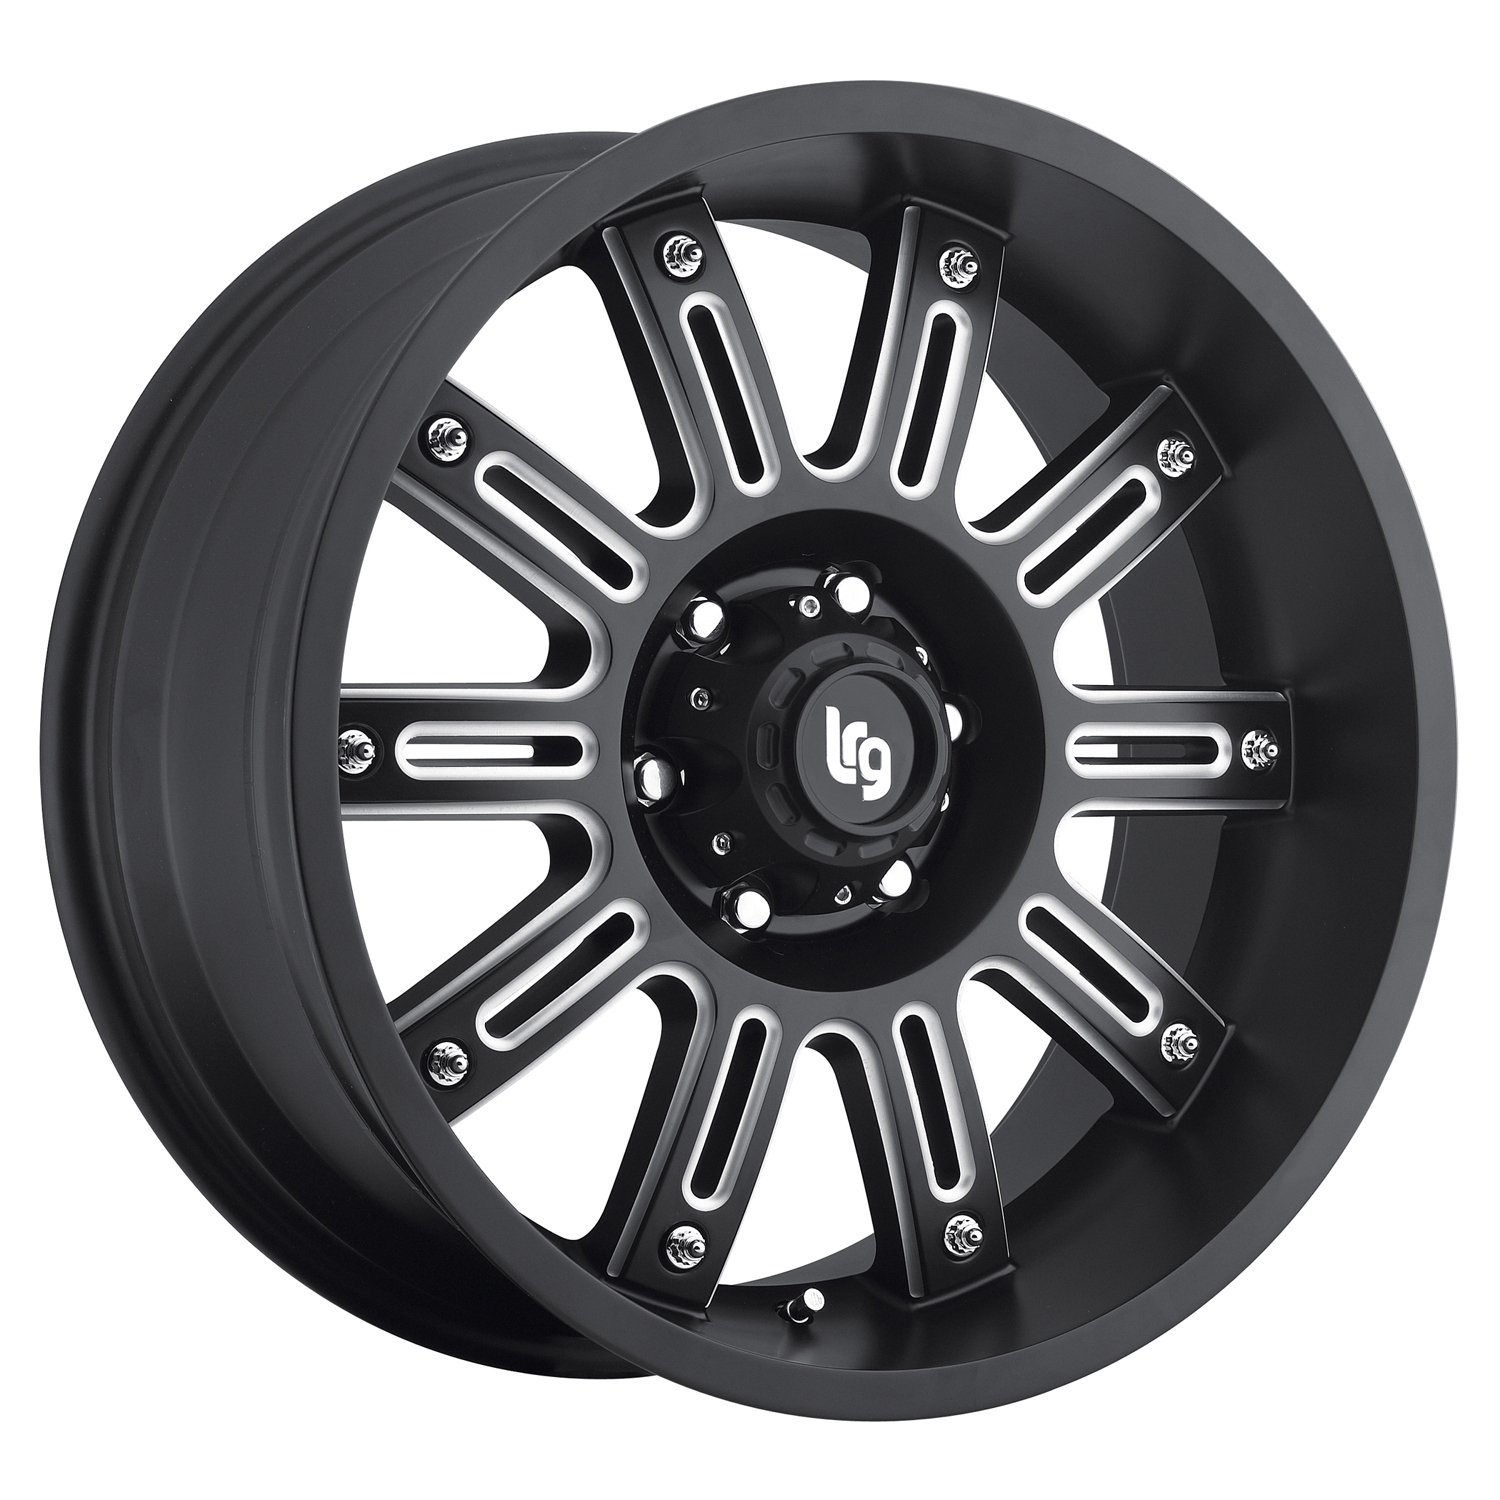 LRG Rims Series 102 Black Machined Wheels